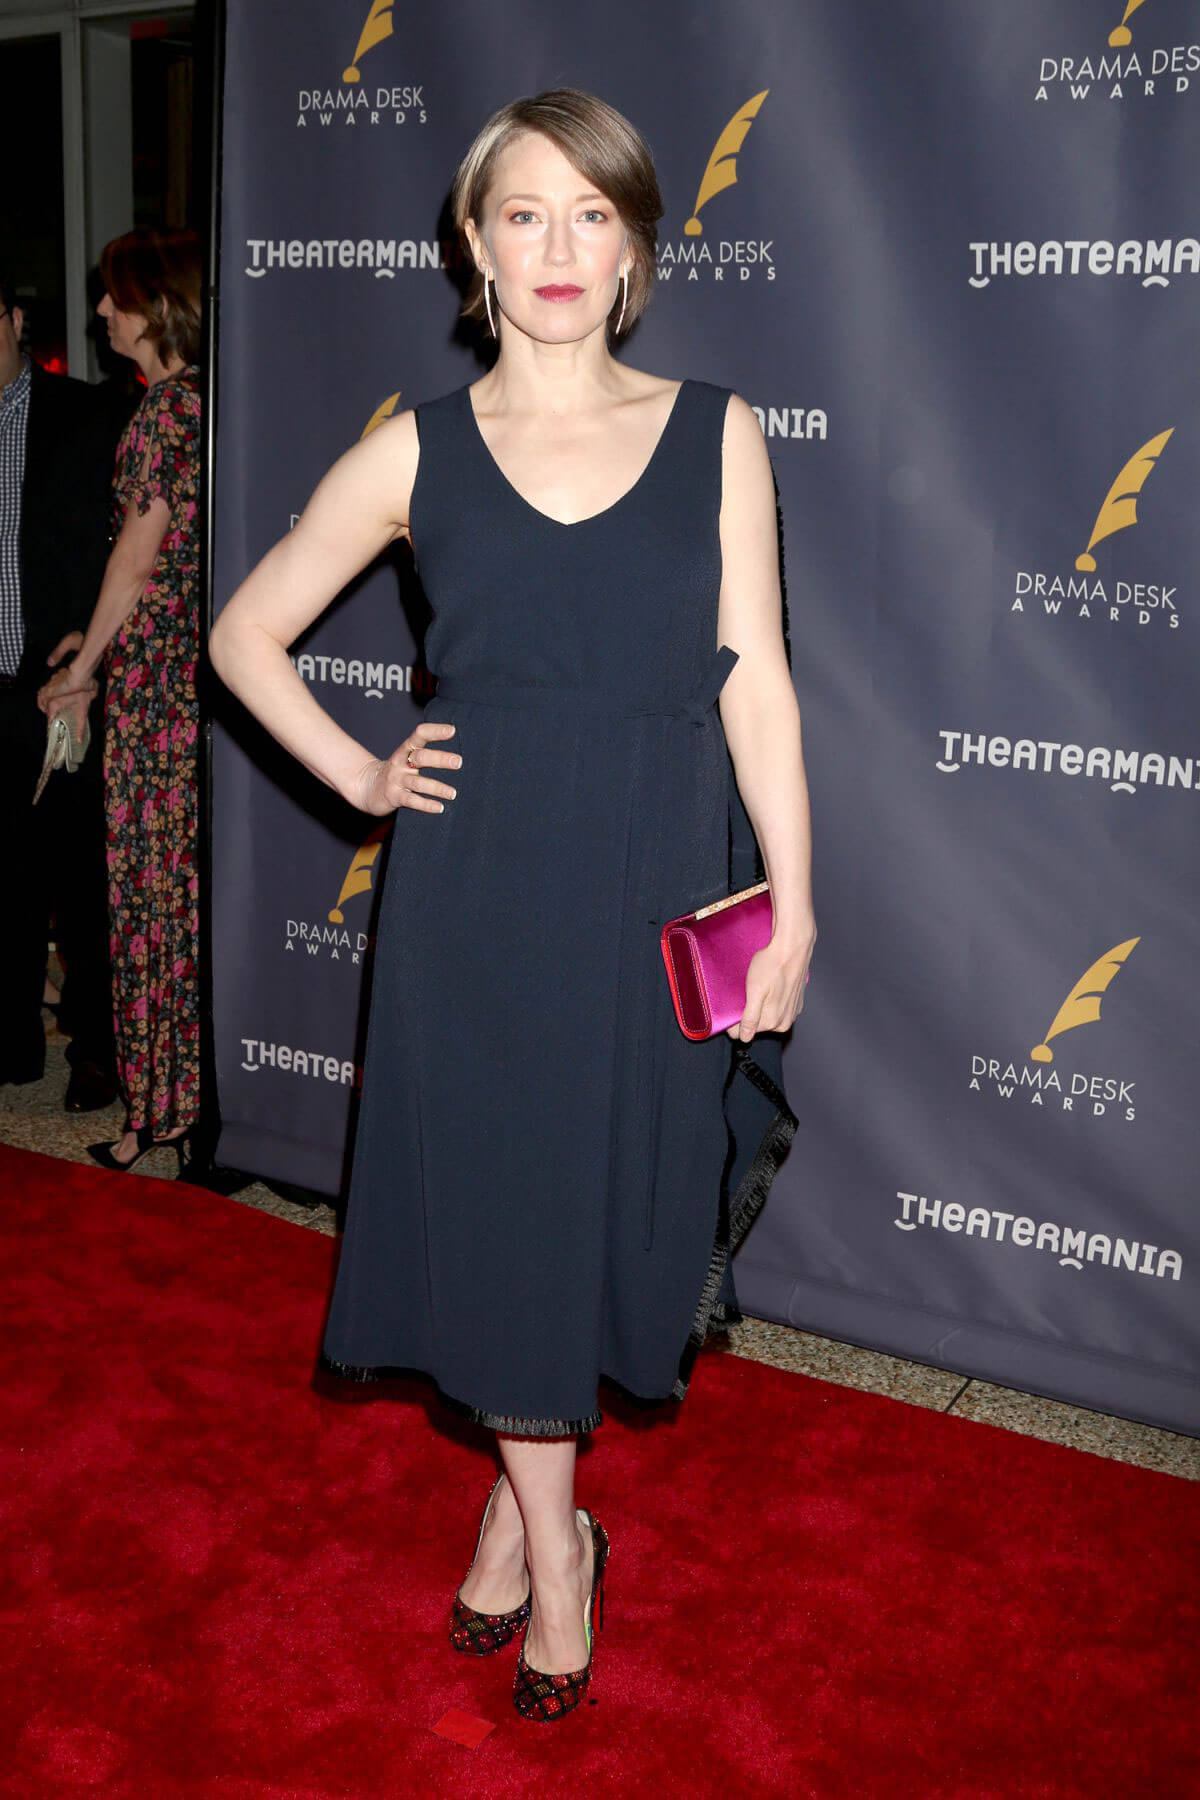 Carrie Coon at Drama Desk Awards 2018 in New York 2018/06/03 3